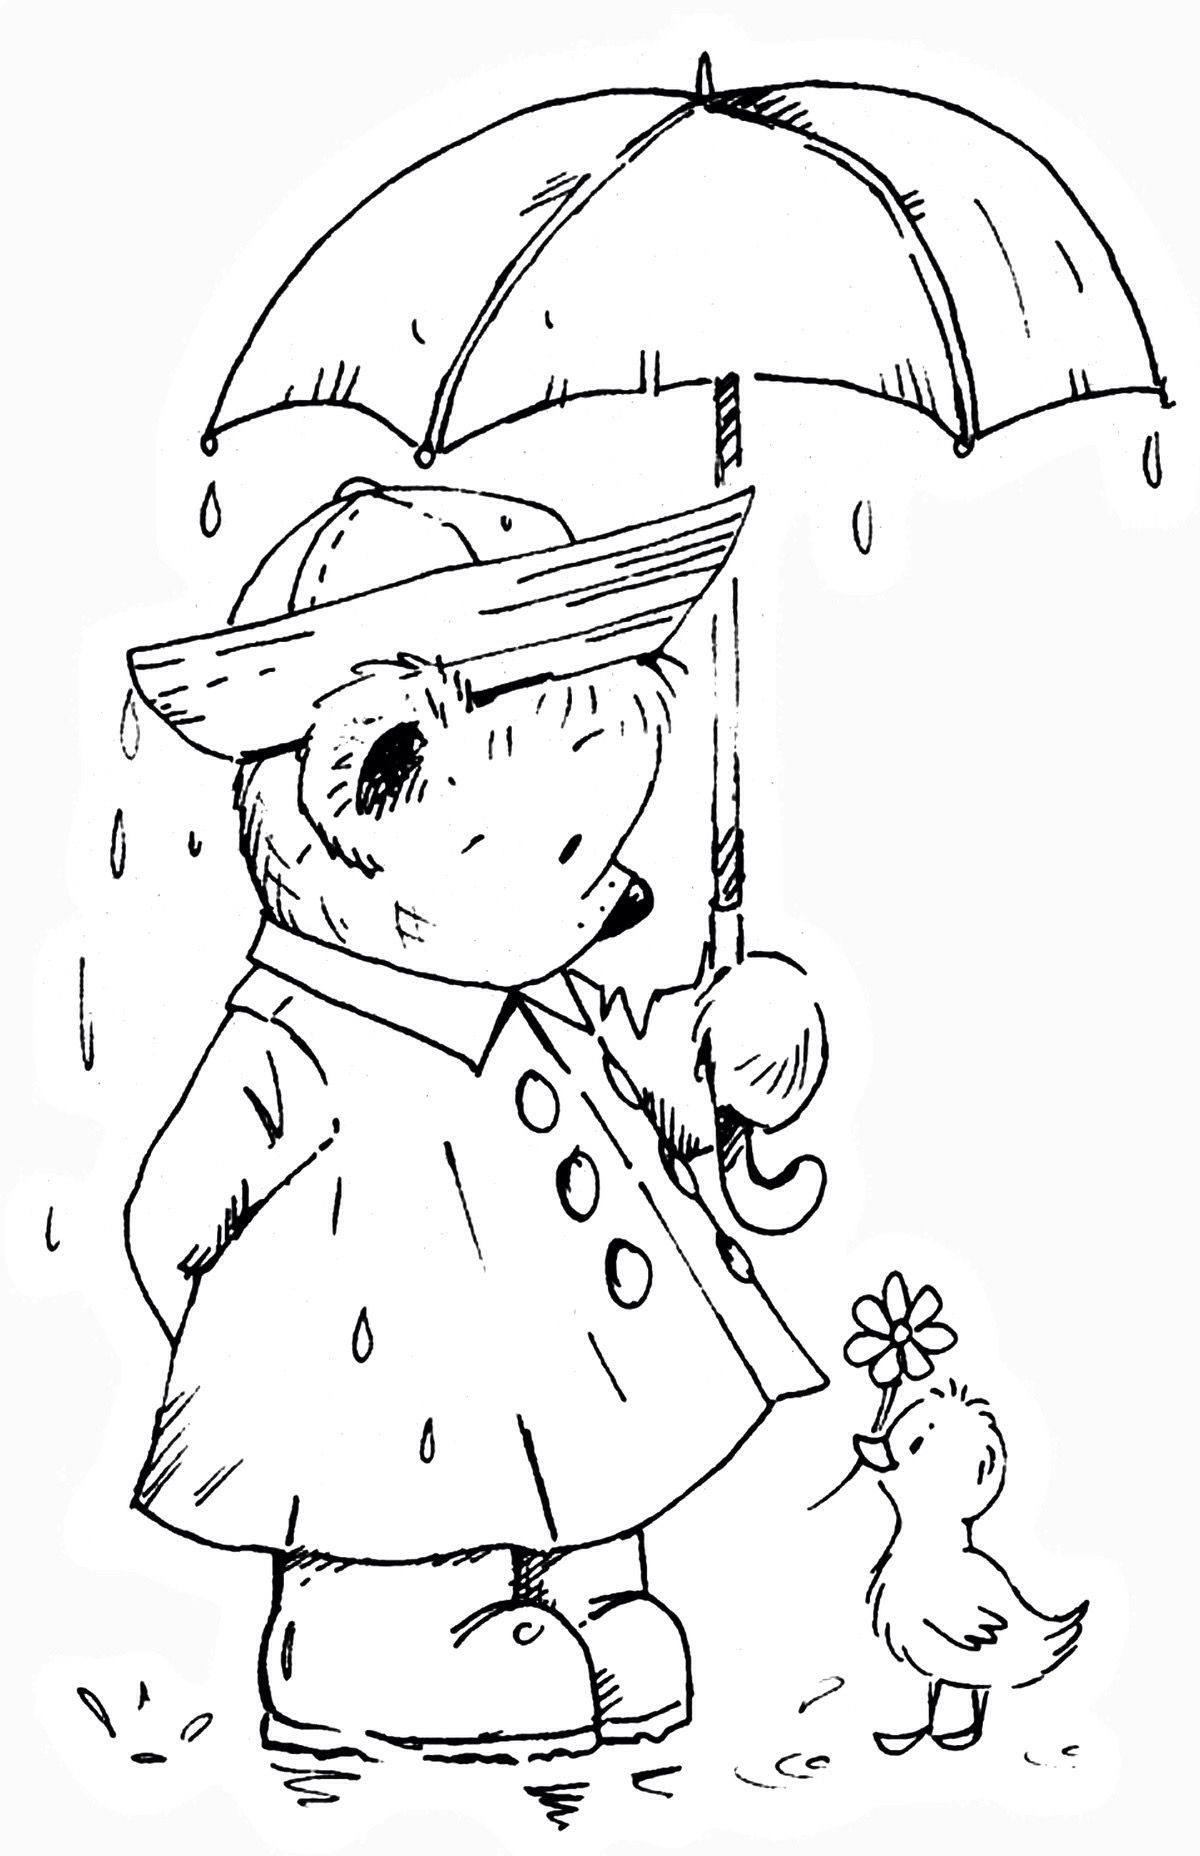 April Showers Bring May Flowers Coloring Page Teddy Drawing